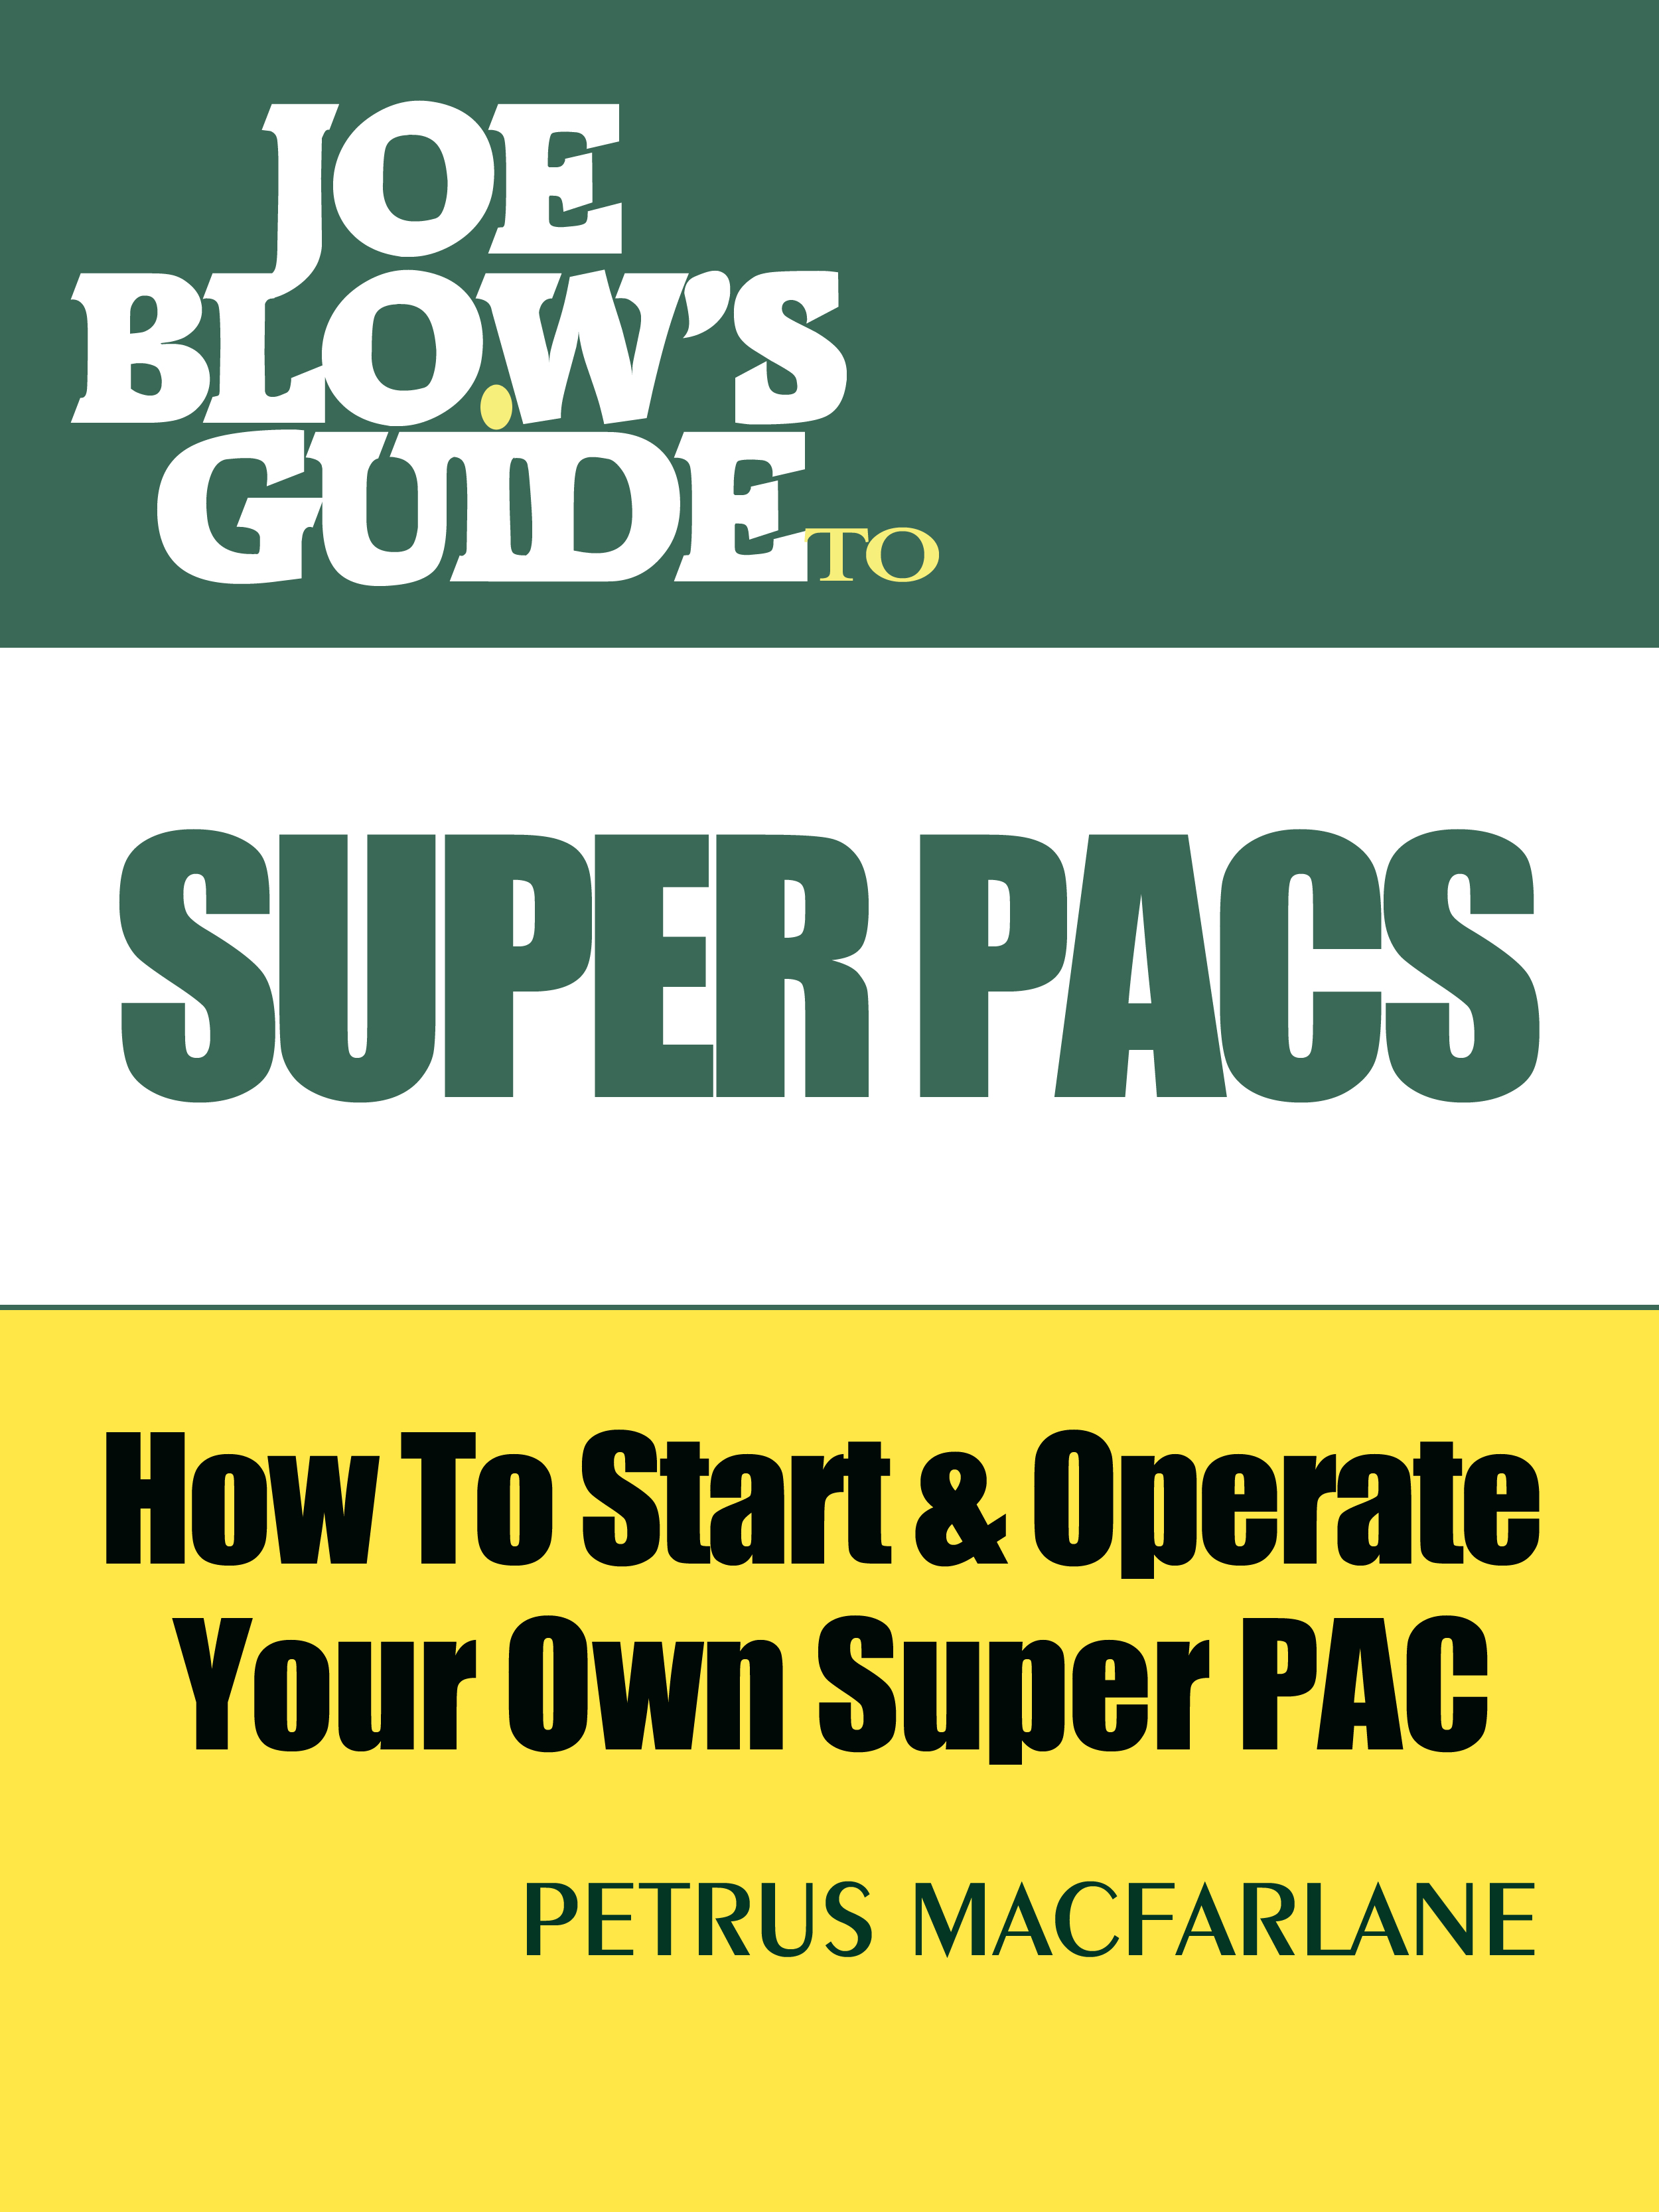 Guide to superpac